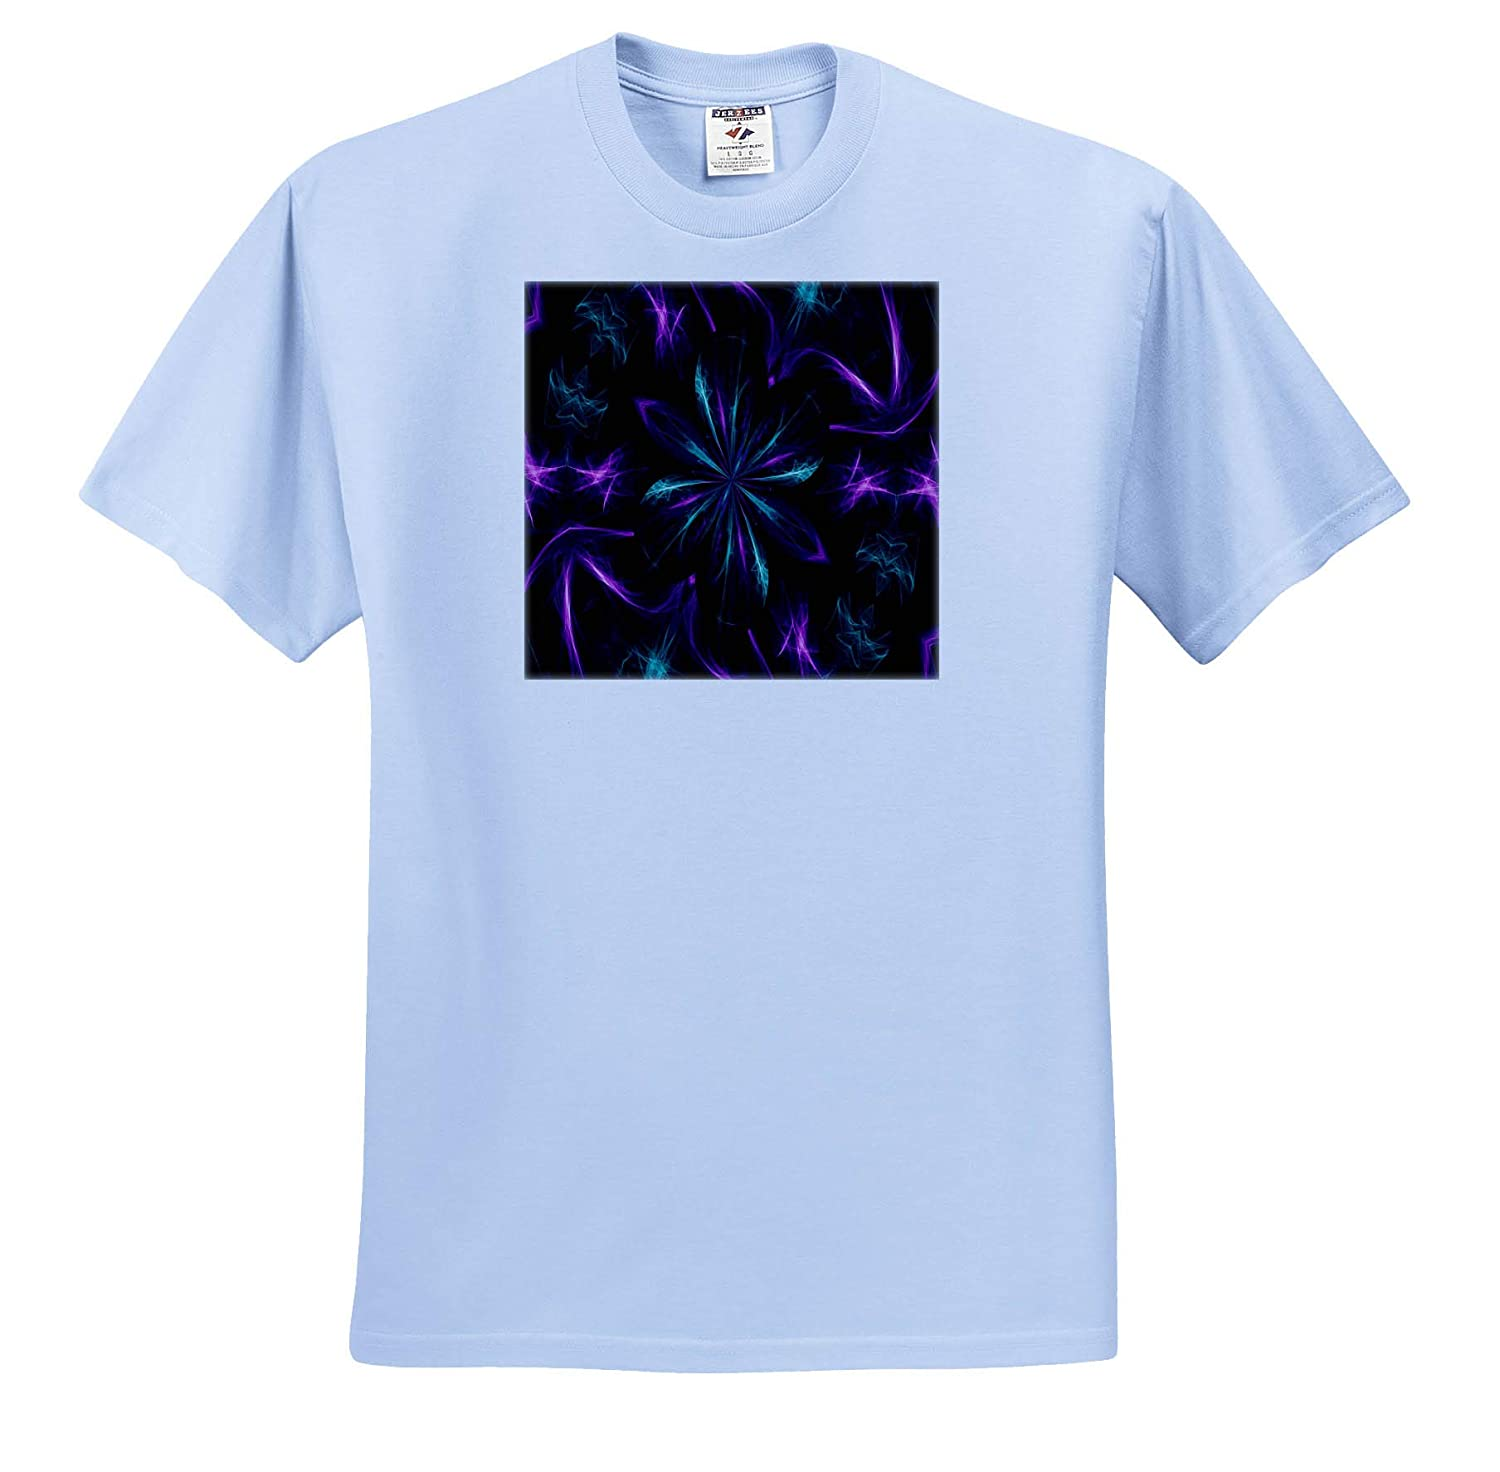 Adult T-Shirt XL Purple and Teal Dreamscapes Design 1 3dRose Dreamscapes by Leslie ts/_314281 Design